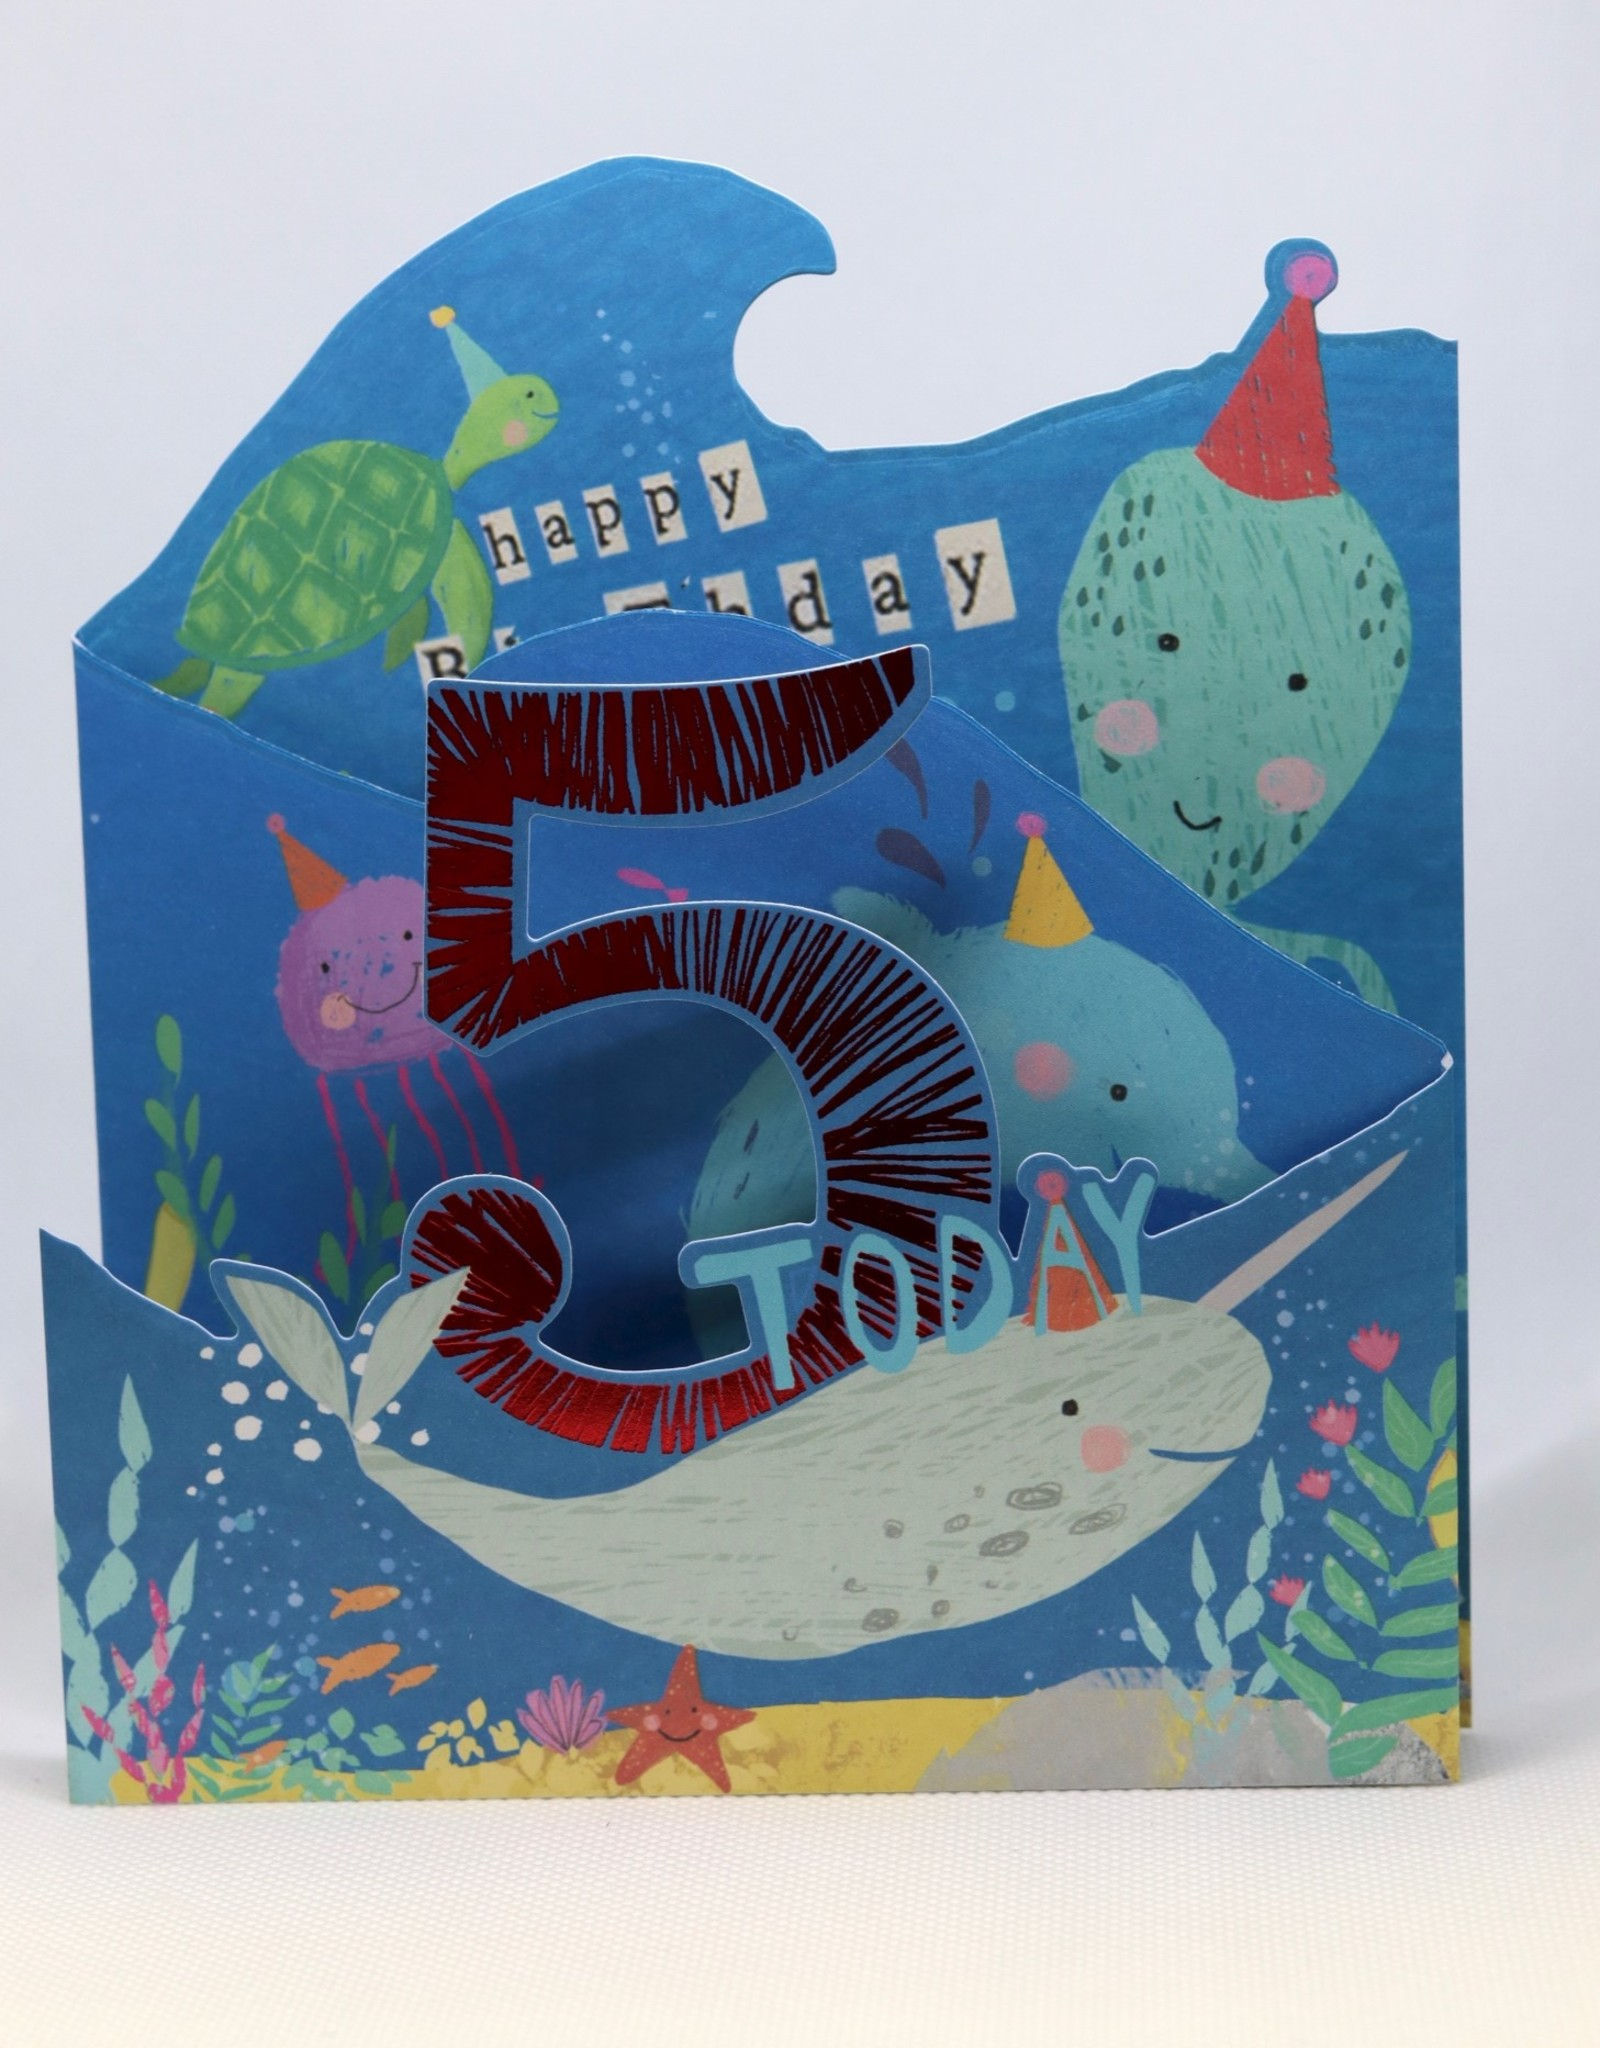 Paperlink Bday Card 05, Under the Sea